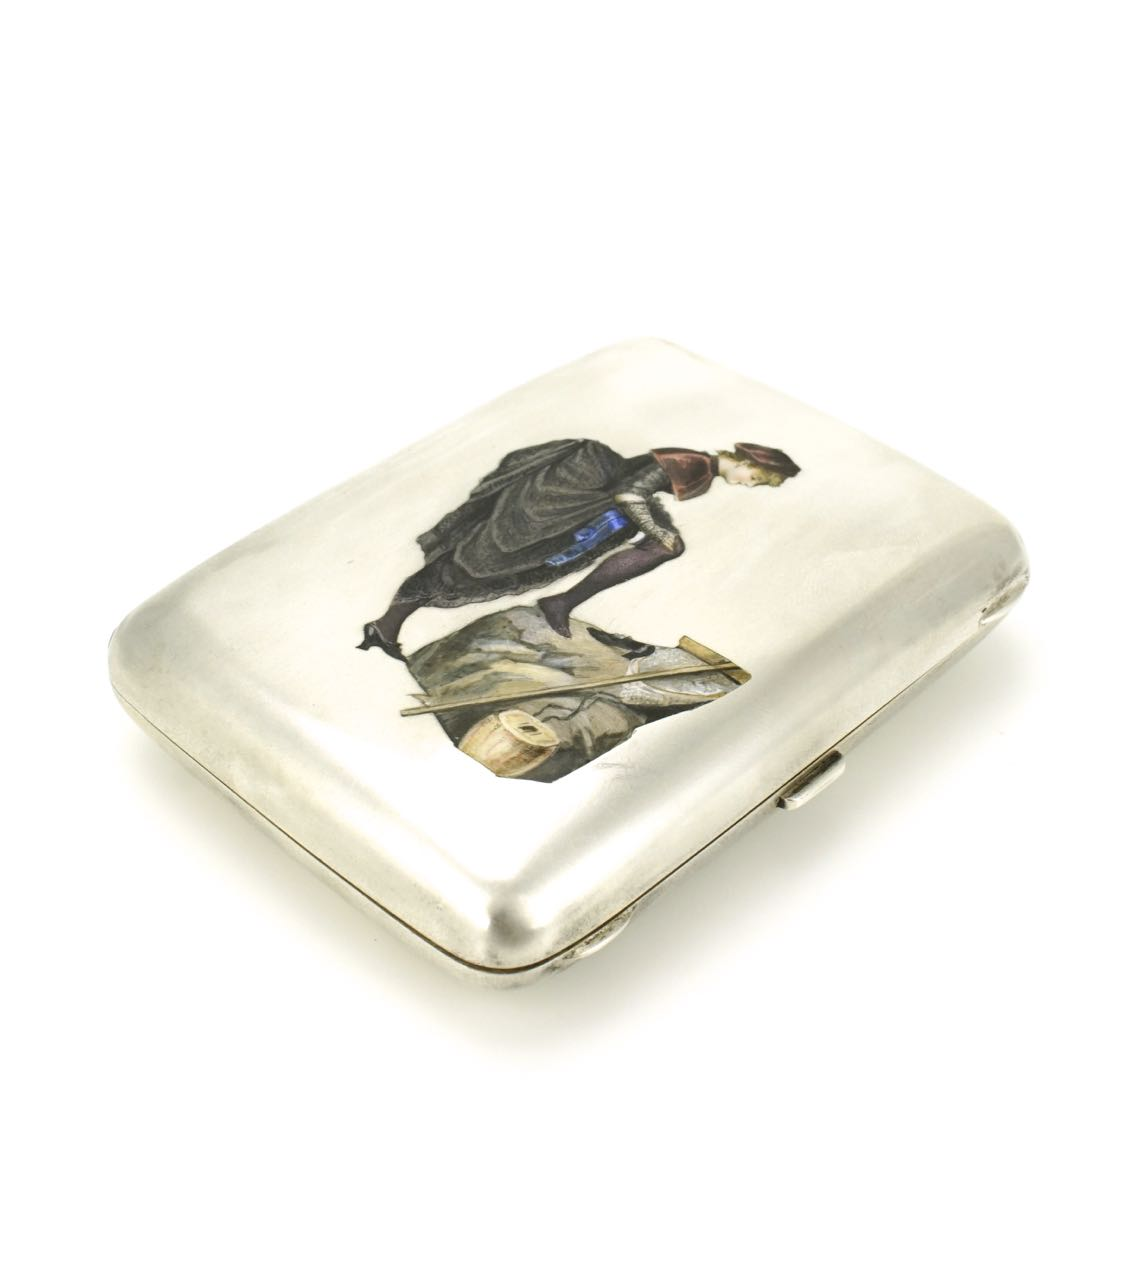 Victorian solid silver and enamel erotic case 1890s